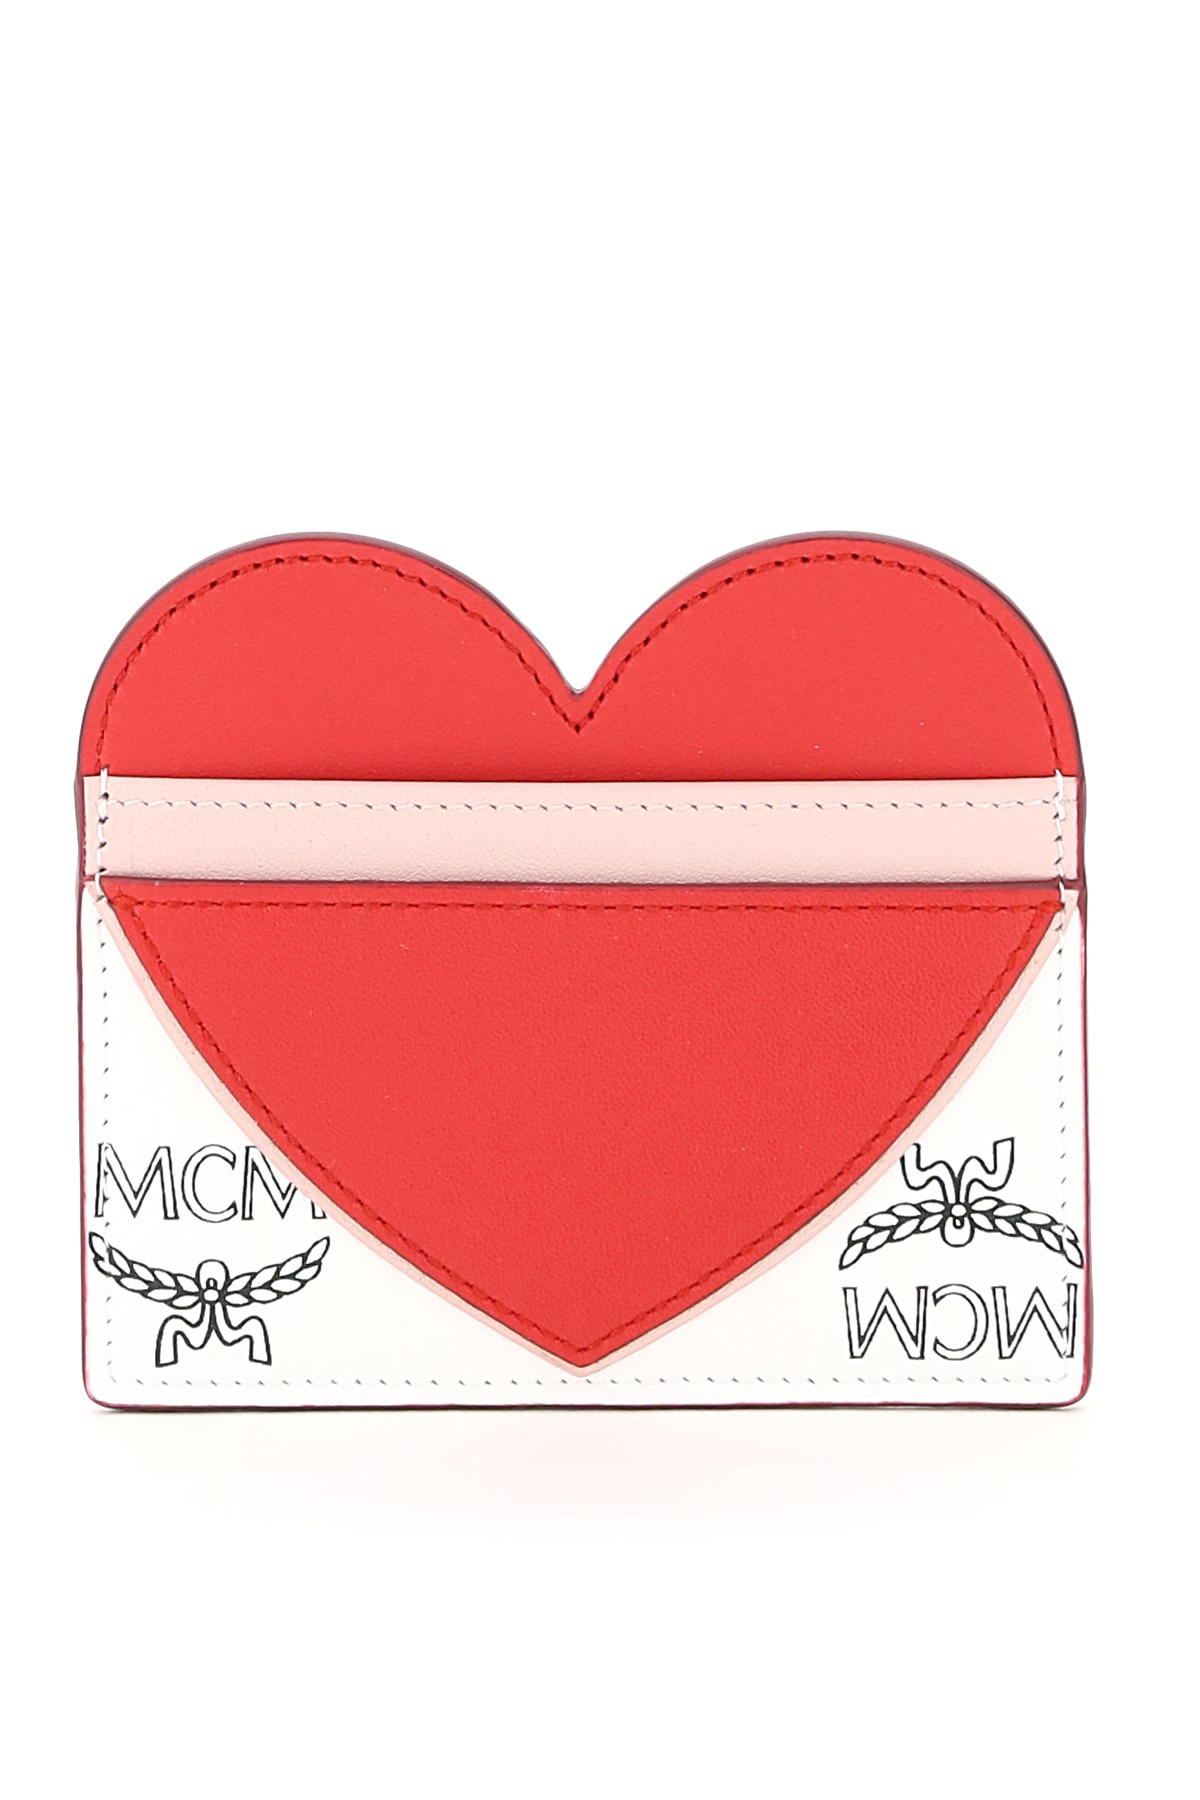 MCM VISETOS CARD HOLDER WITH HEART OS Red, White, Black Leather